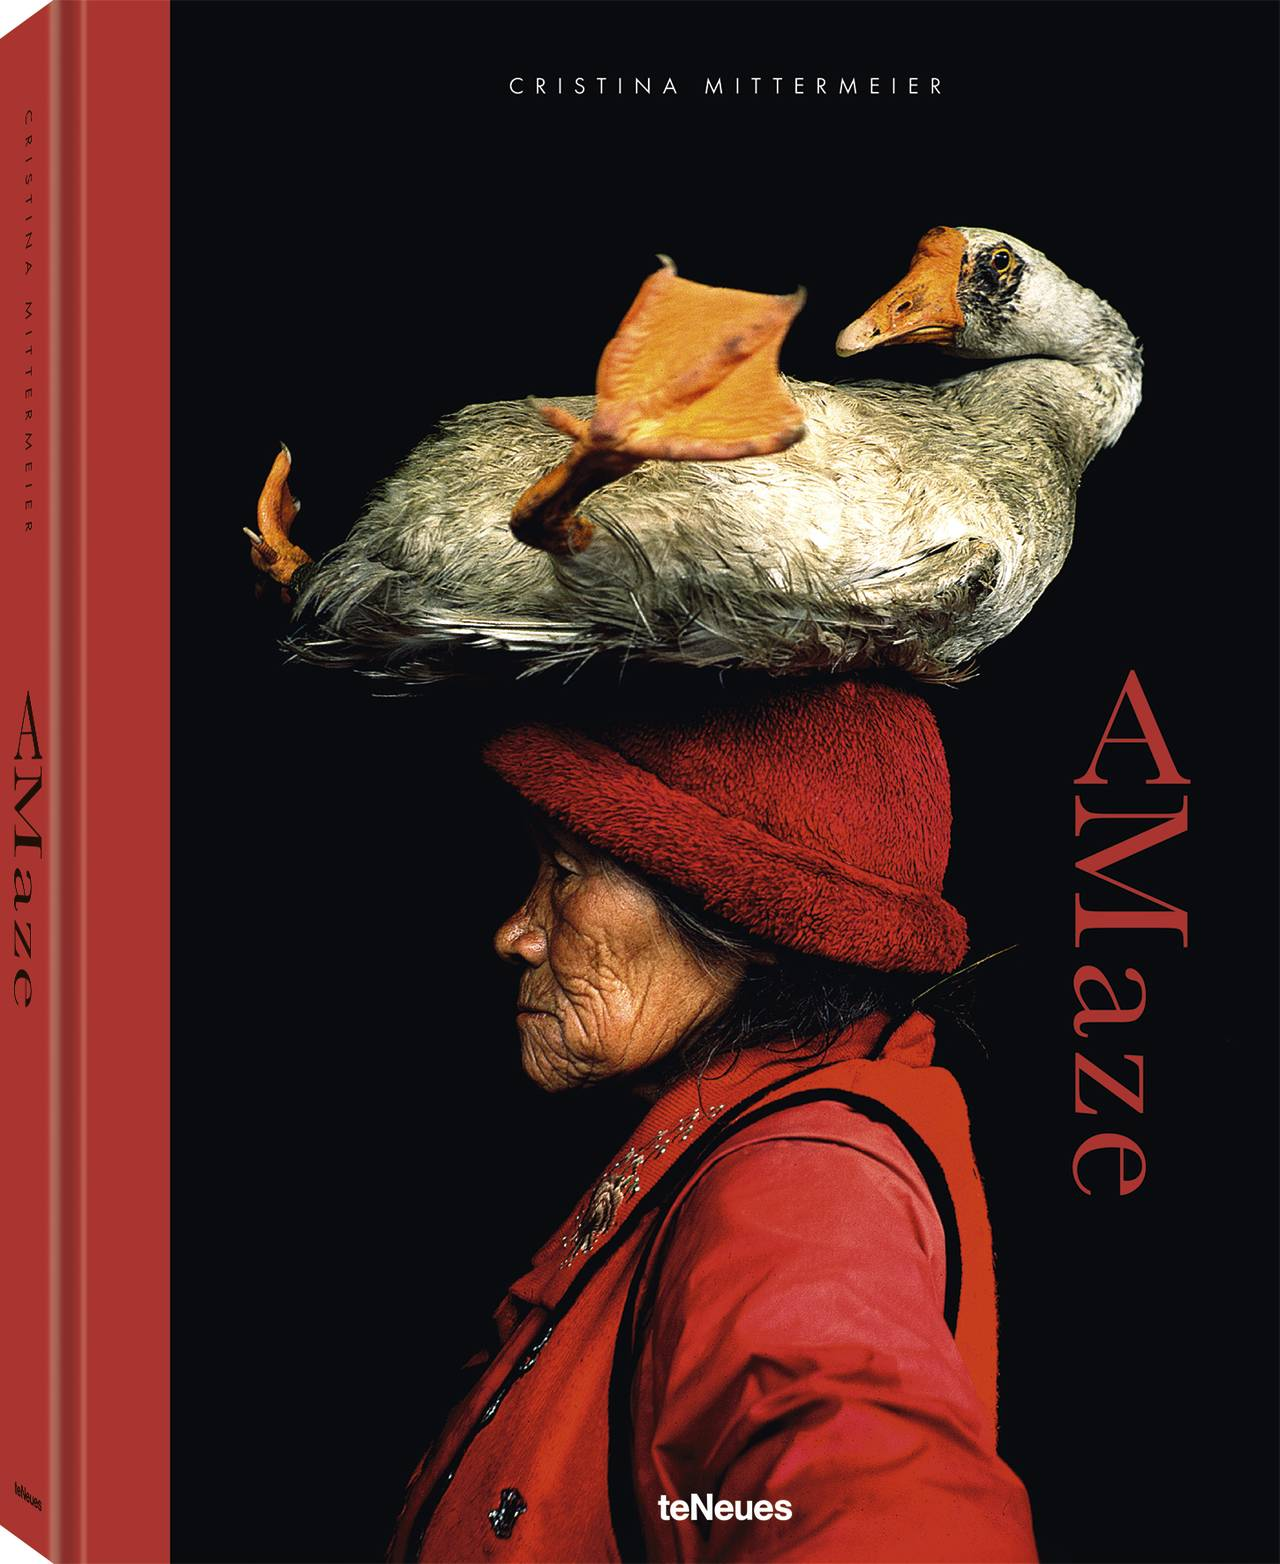 © Amaze by Cristina Mittermeier, published by teNeues, www.teneues.com, Lady with the Goose, Yunnan Province, China, Photo © 2018 Cristina Mittermeier. All rights reserved.www.sealegacy.org